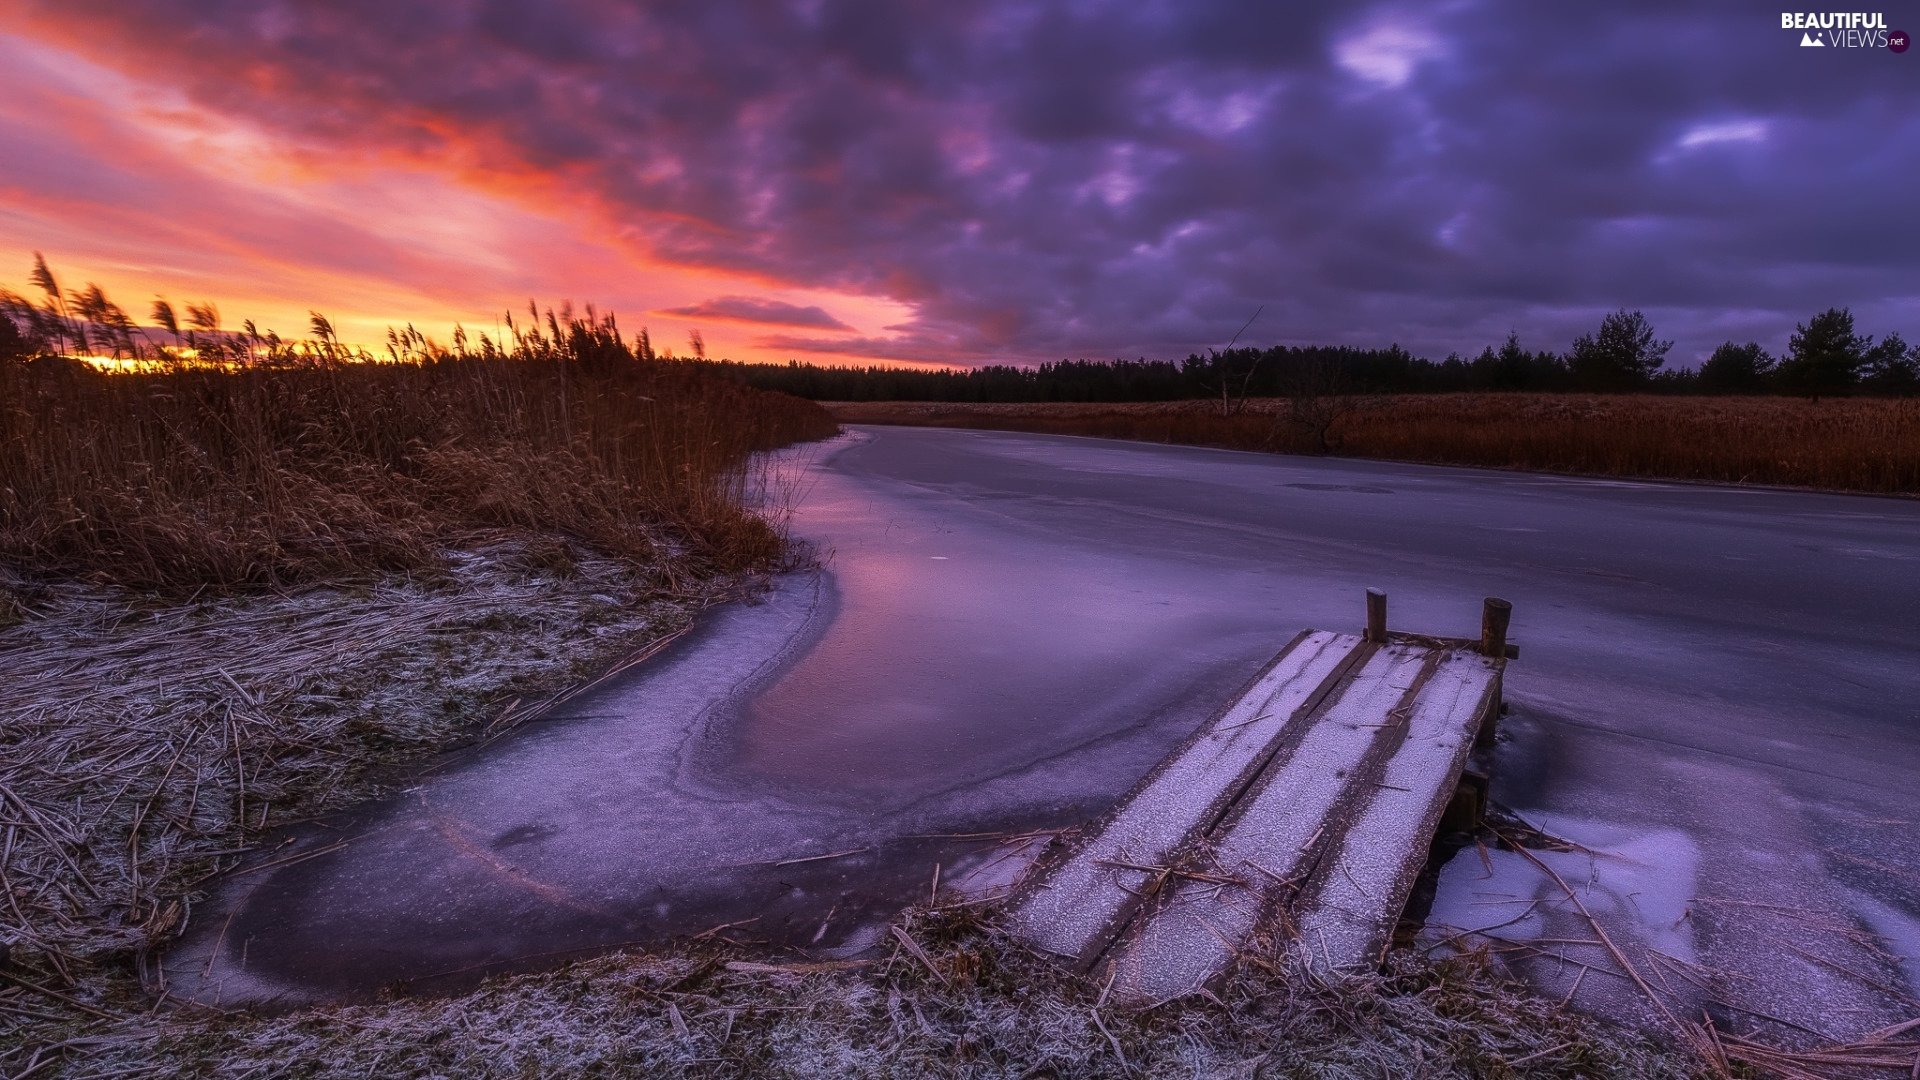 frosted, River, grass, Great Sunsets, Platform, winter